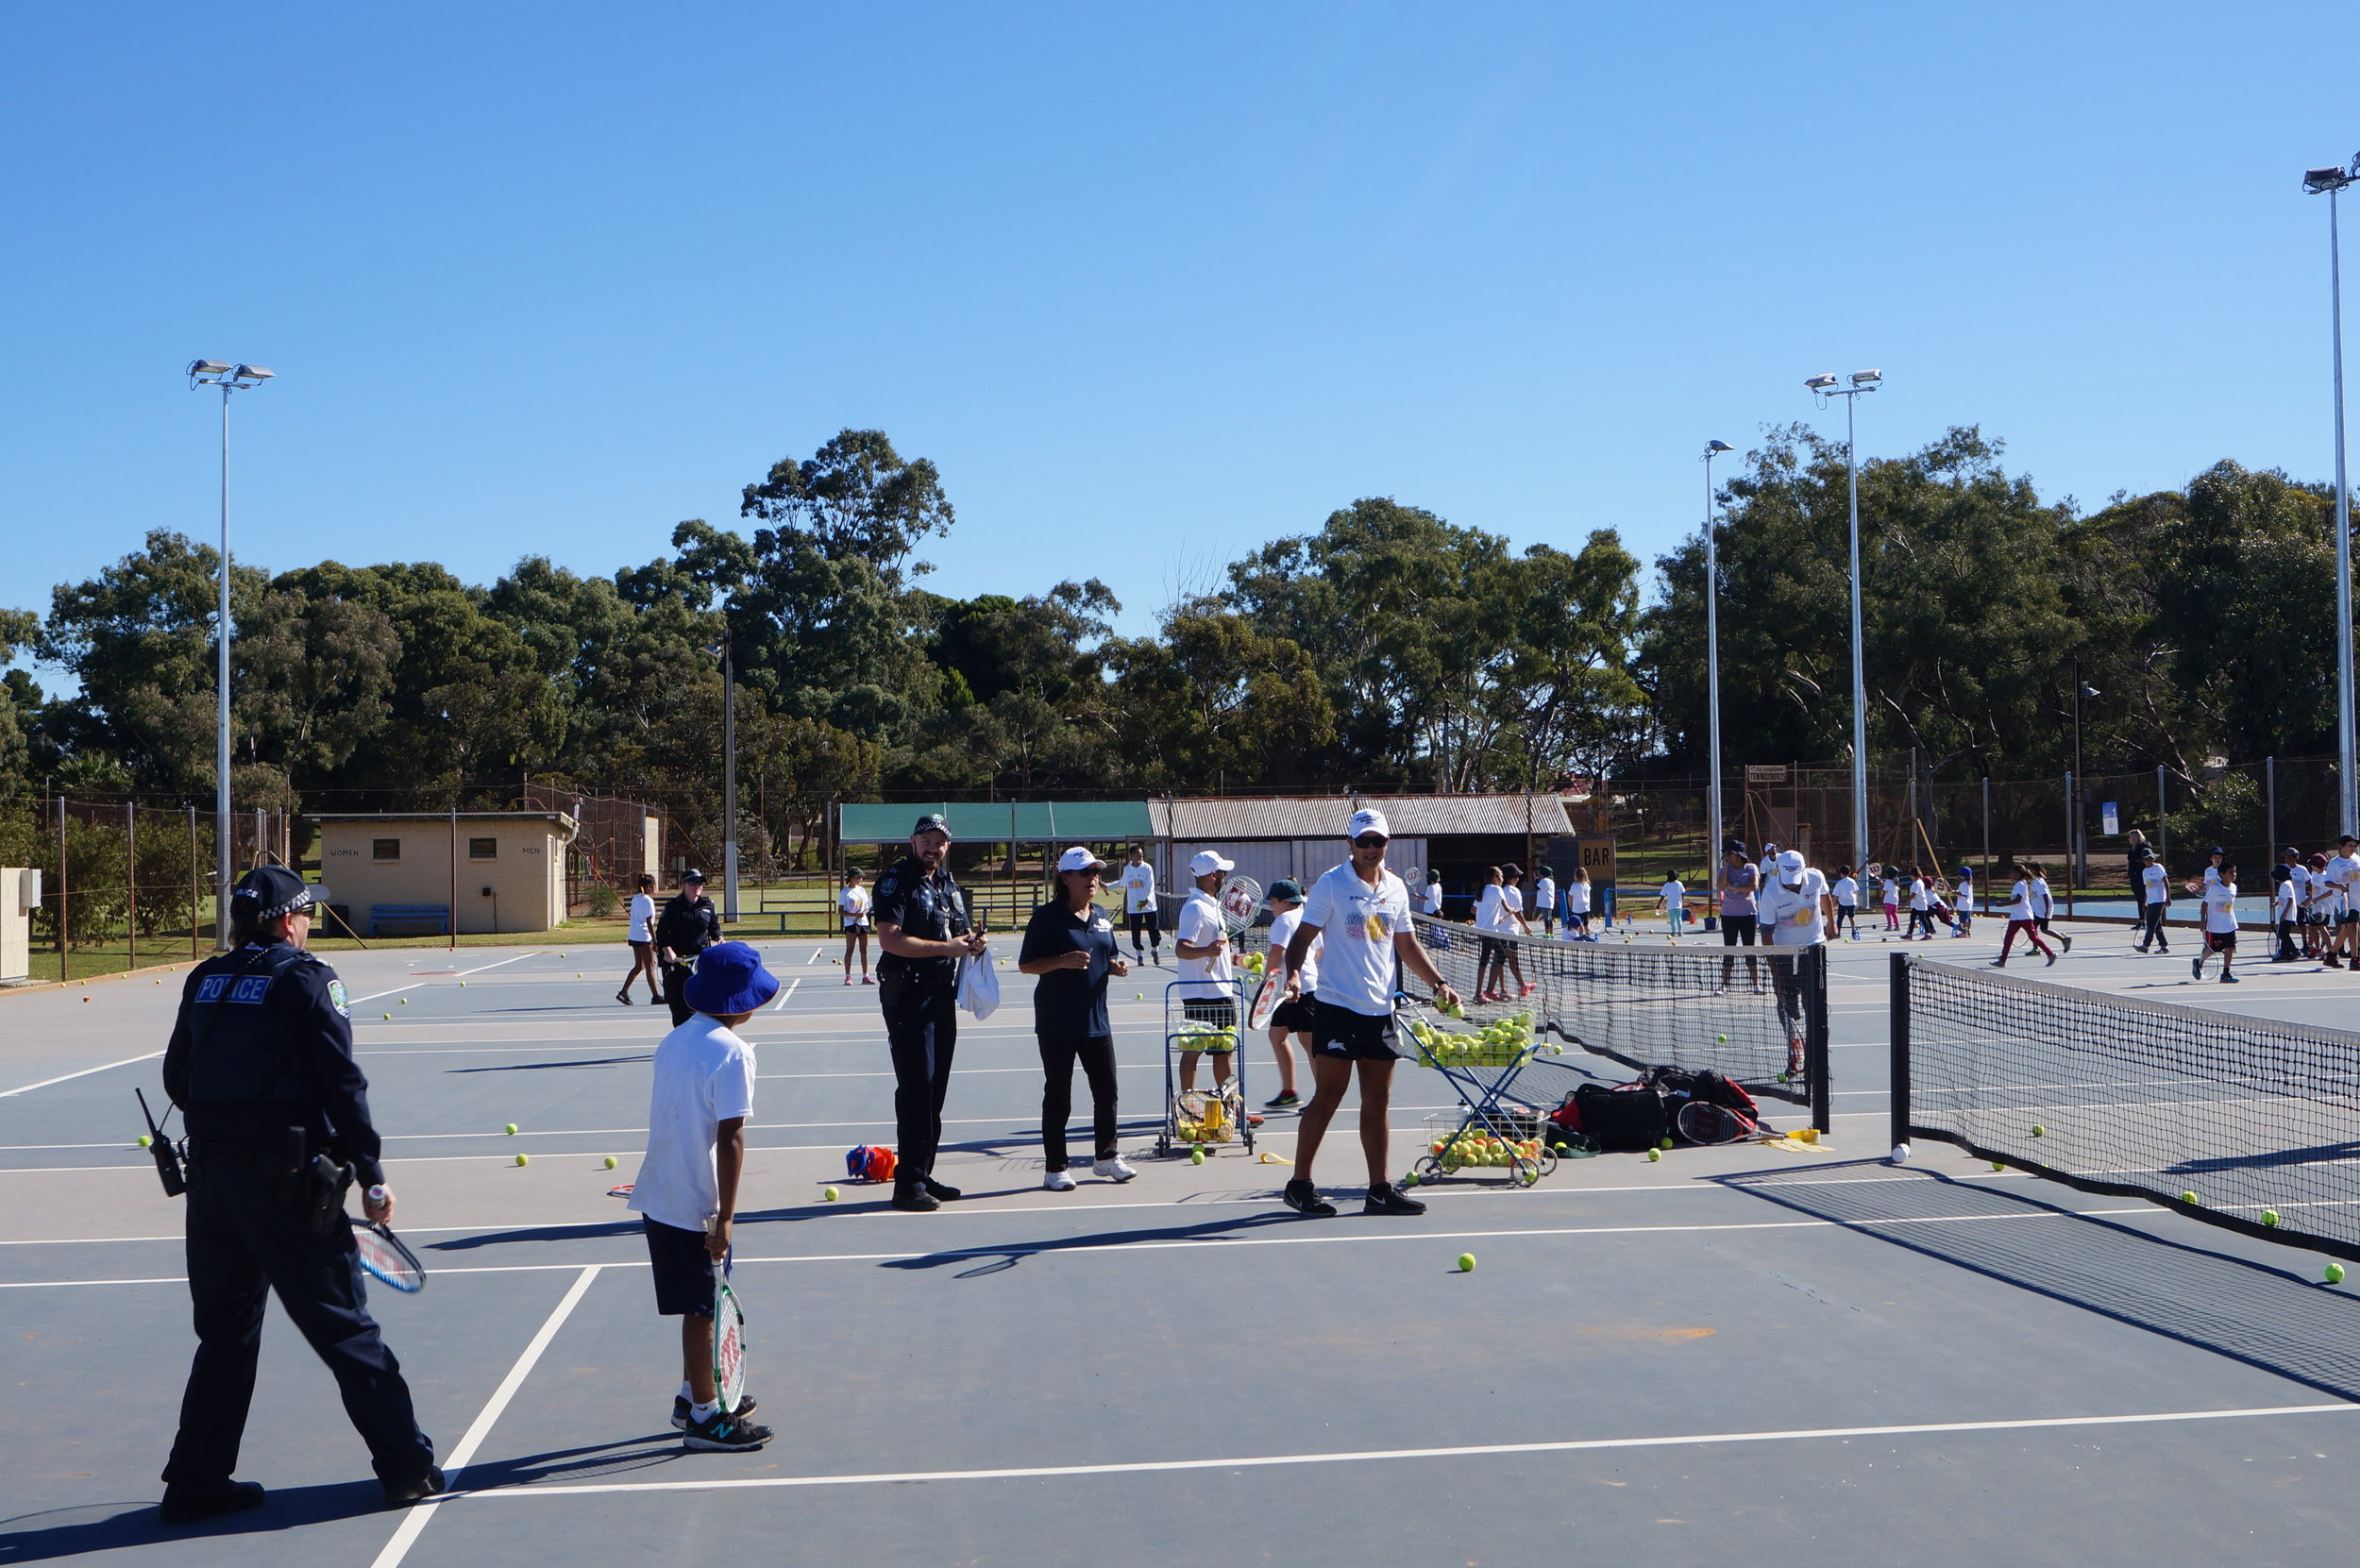 Everyone delighted to have the Port Augusta Police join in on the courts